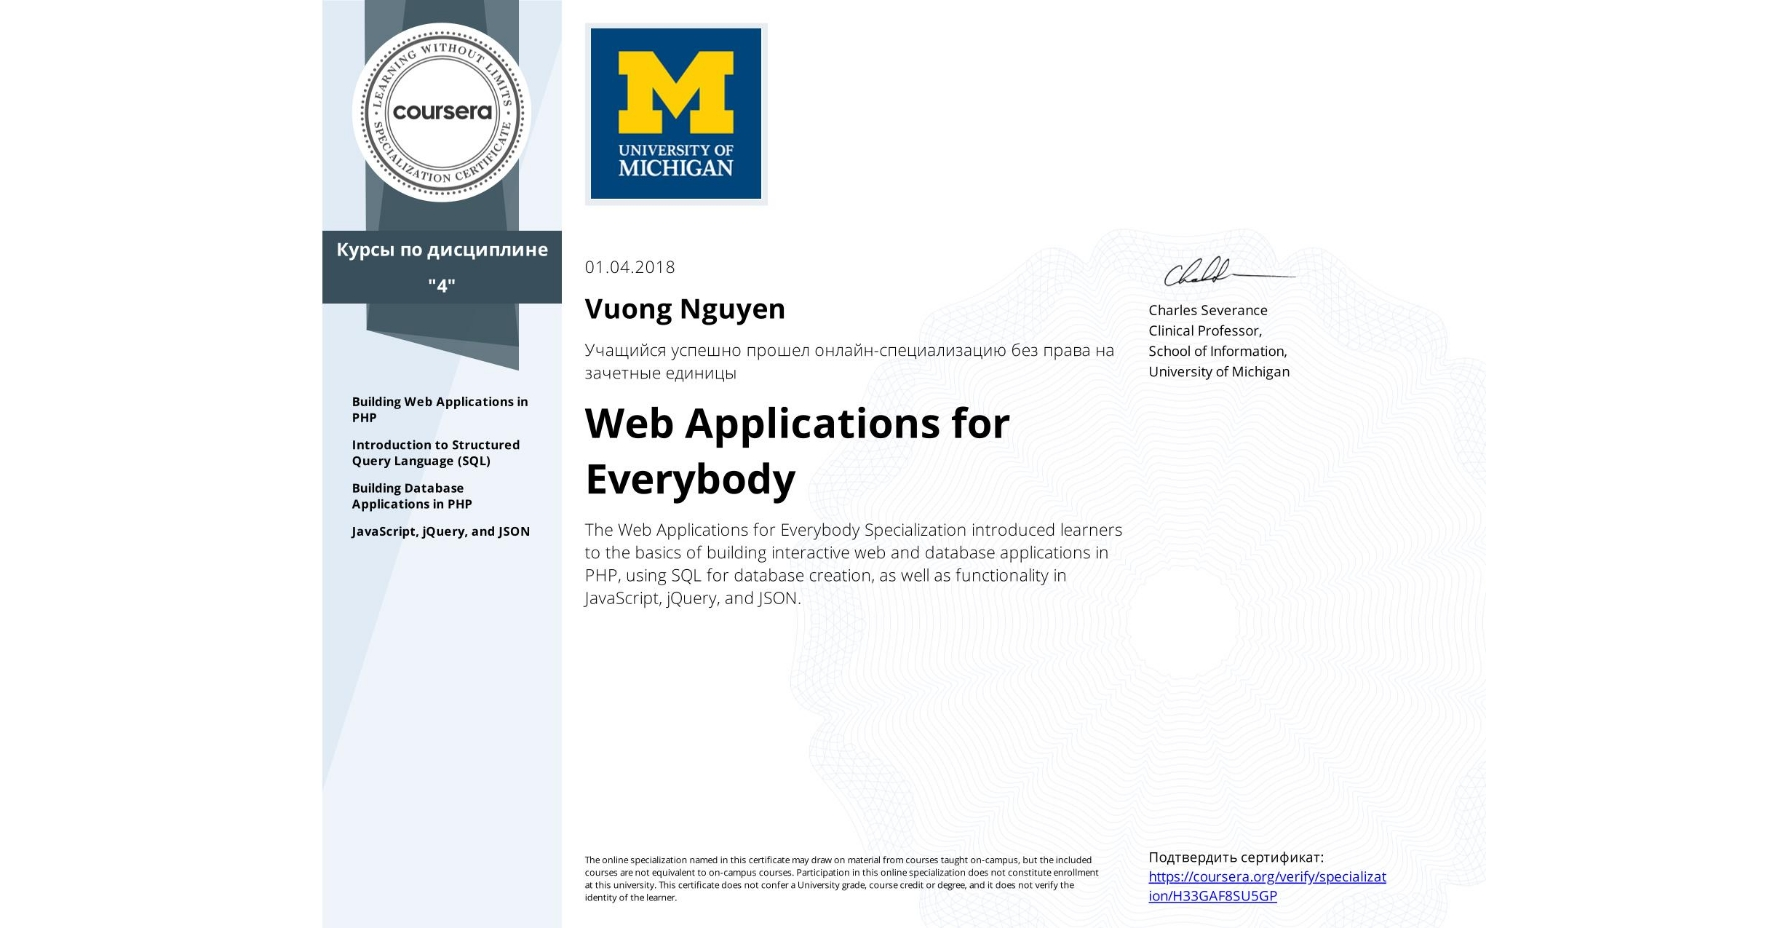 View certificate for Vuong Nguyen, Web Applications for Everybody, offered through Coursera. The Web Applications for Everybody Specialization introduced learners to the basics of building interactive web and database applications in PHP, using SQL for database creation, as well as functionality in JavaScript, jQuery, and JSON.